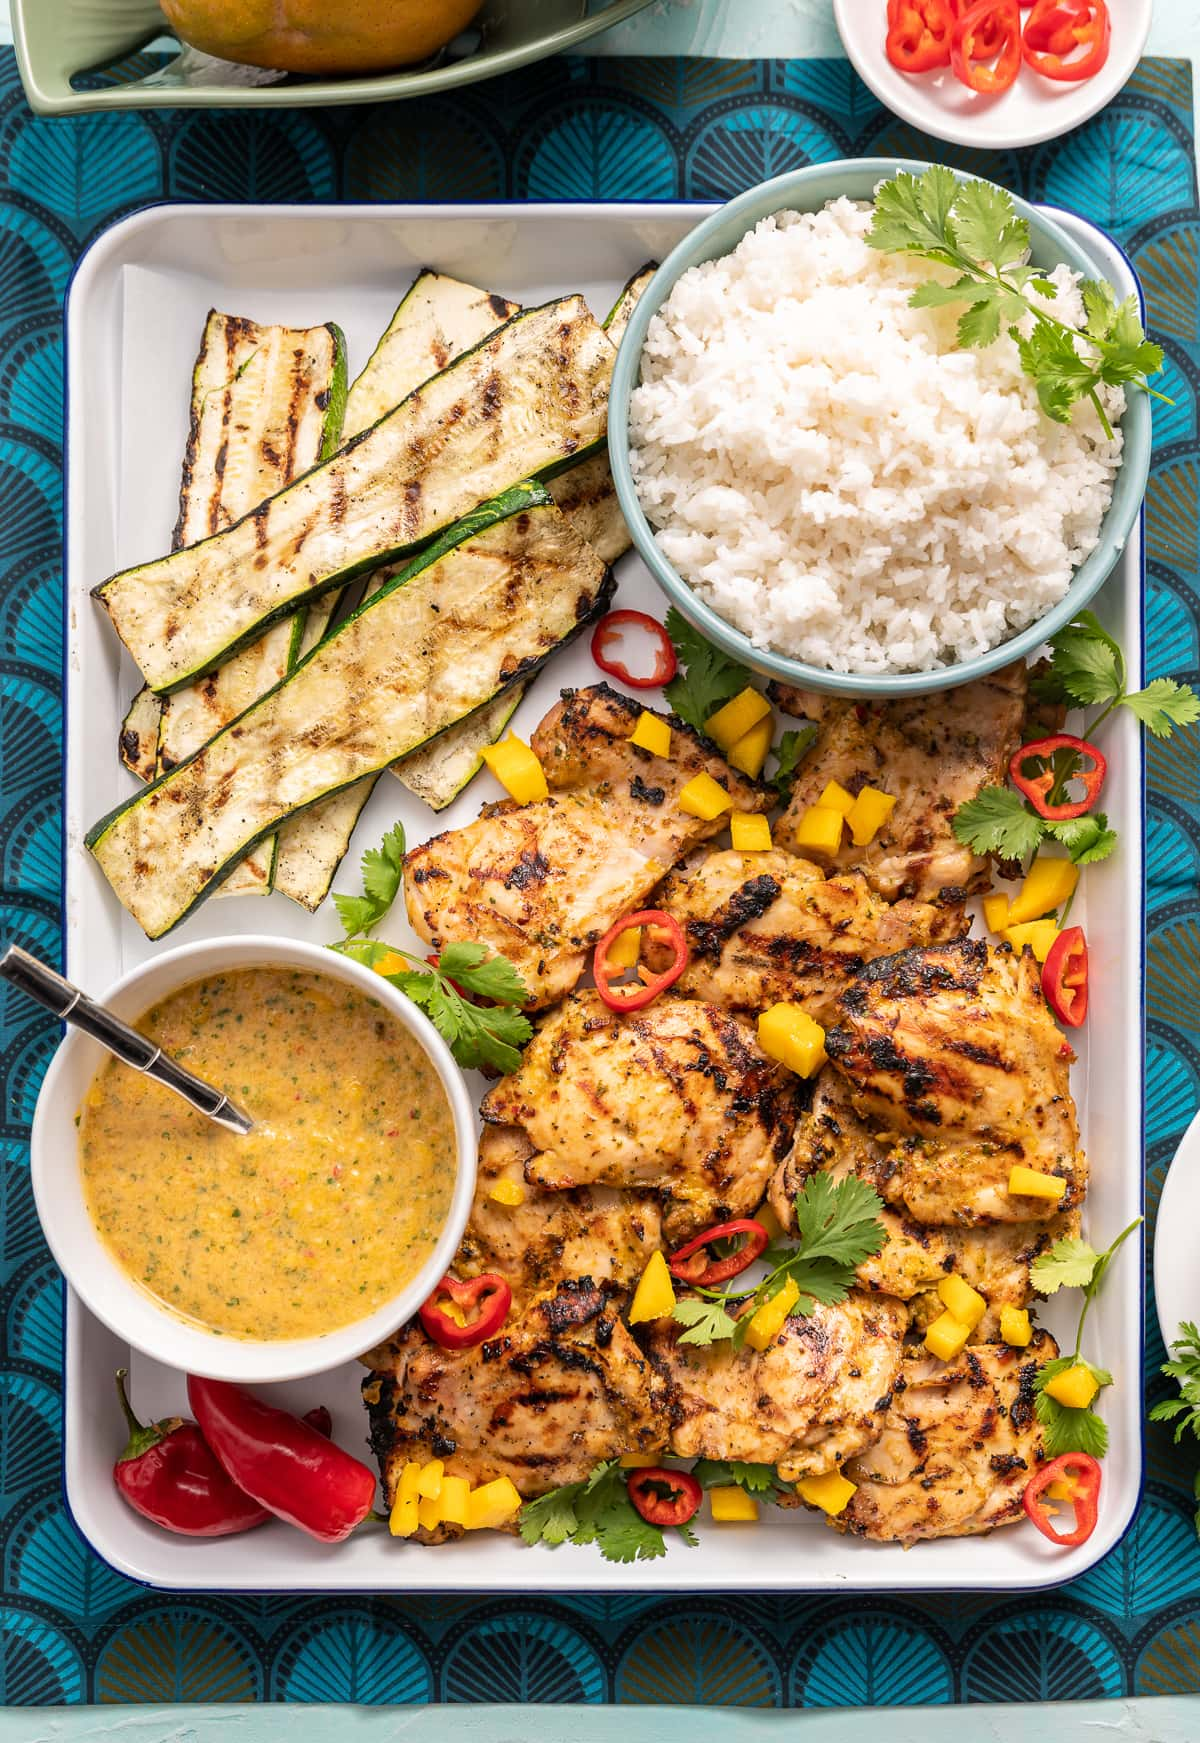 grilled chicken on a tray with mango and red chili slices cilanto pieces bowl of white rice bowl of yellow mango sauce grilled zucchini slices